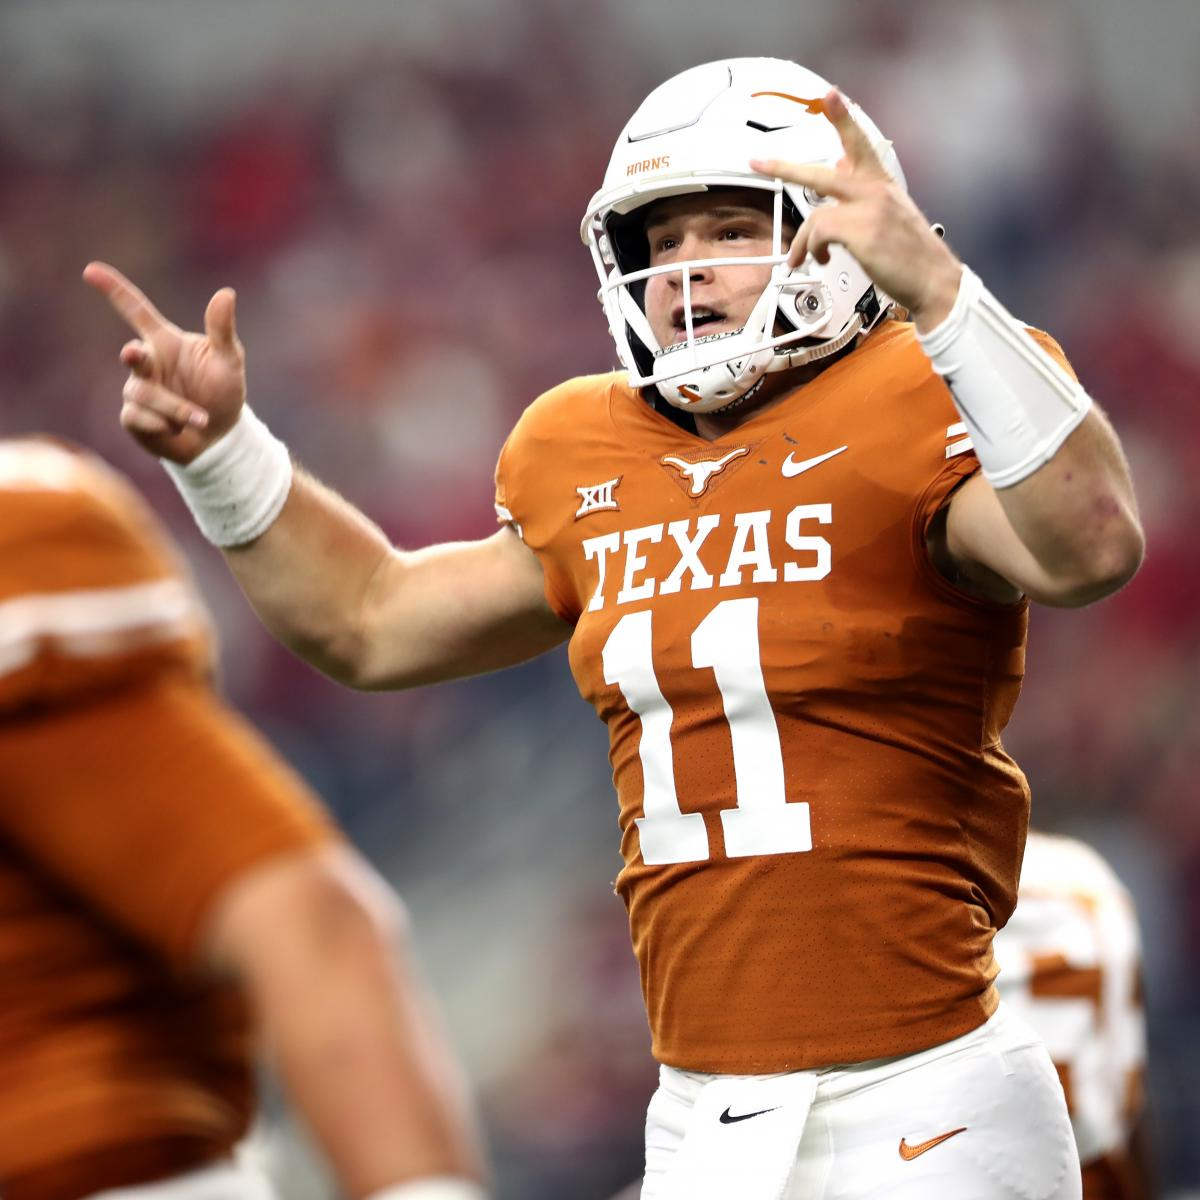 Sugar Bowl 2018 Updated Odds And Preview For Texas Vs Georgia